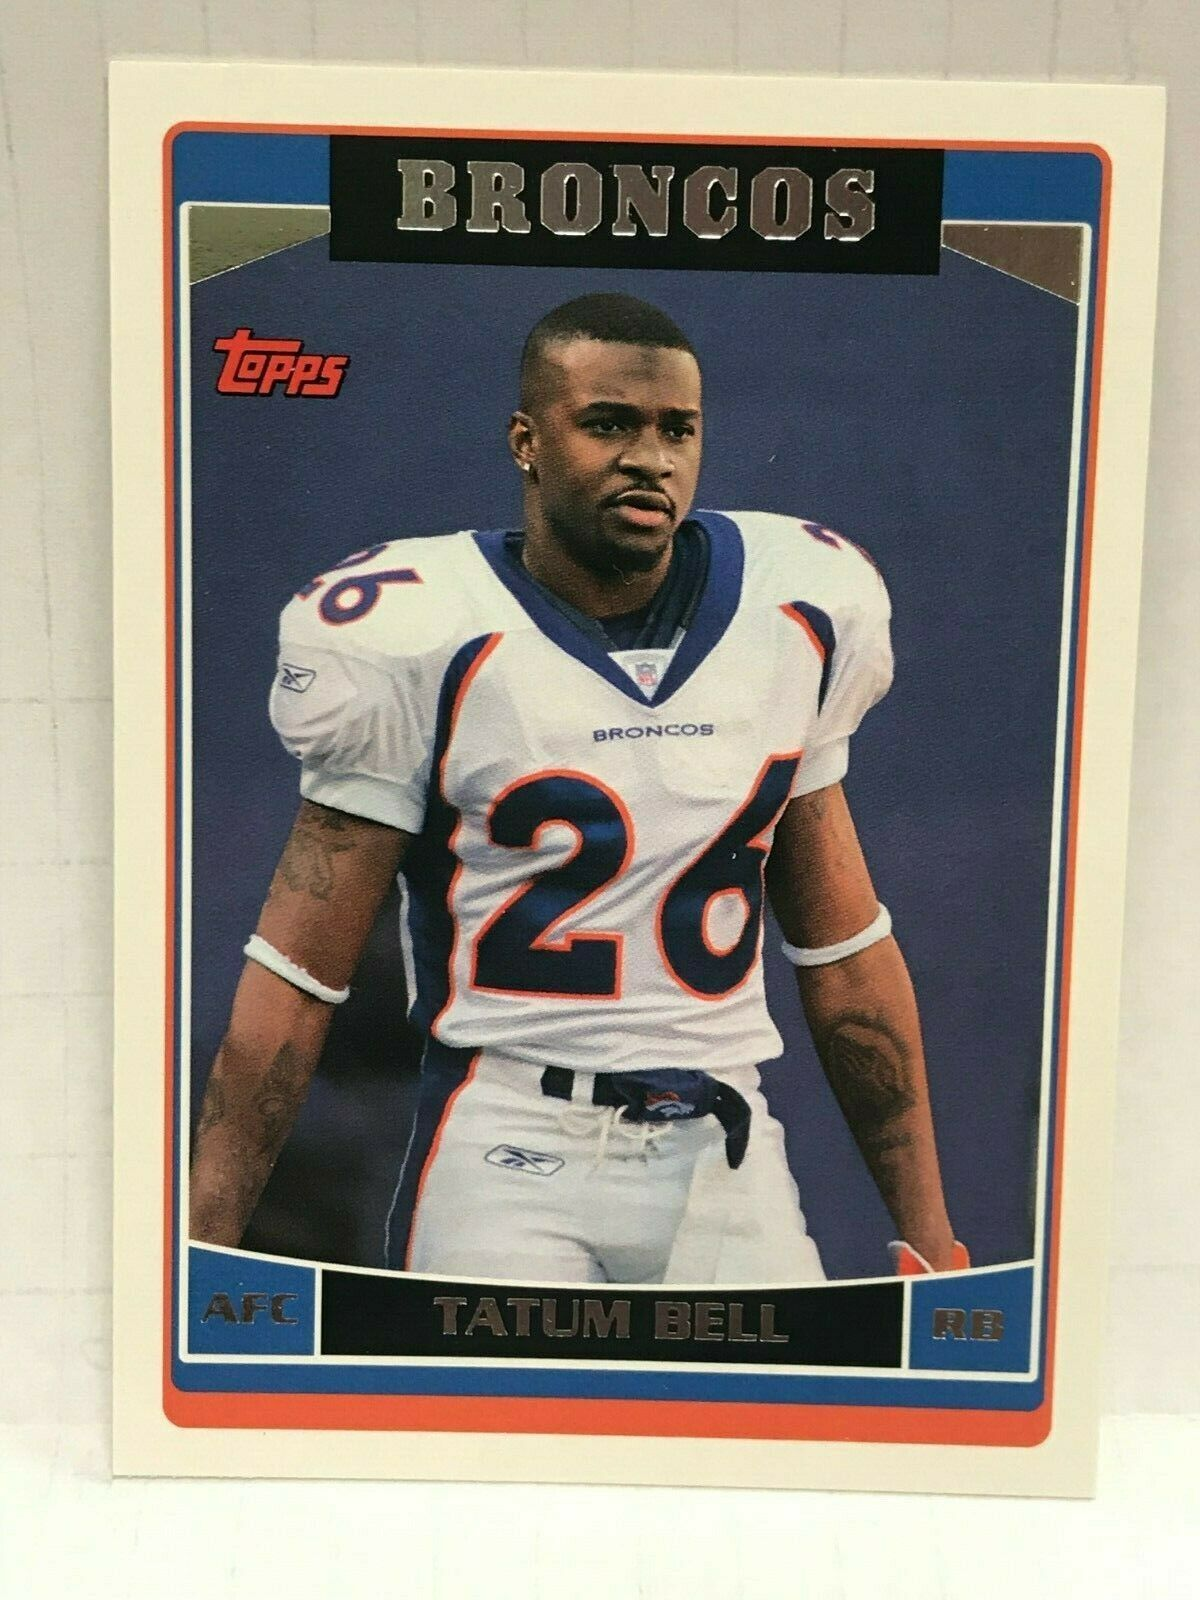 2006 Topps Football - #223 - Tatum Bell - Running Back - Denver Broncos